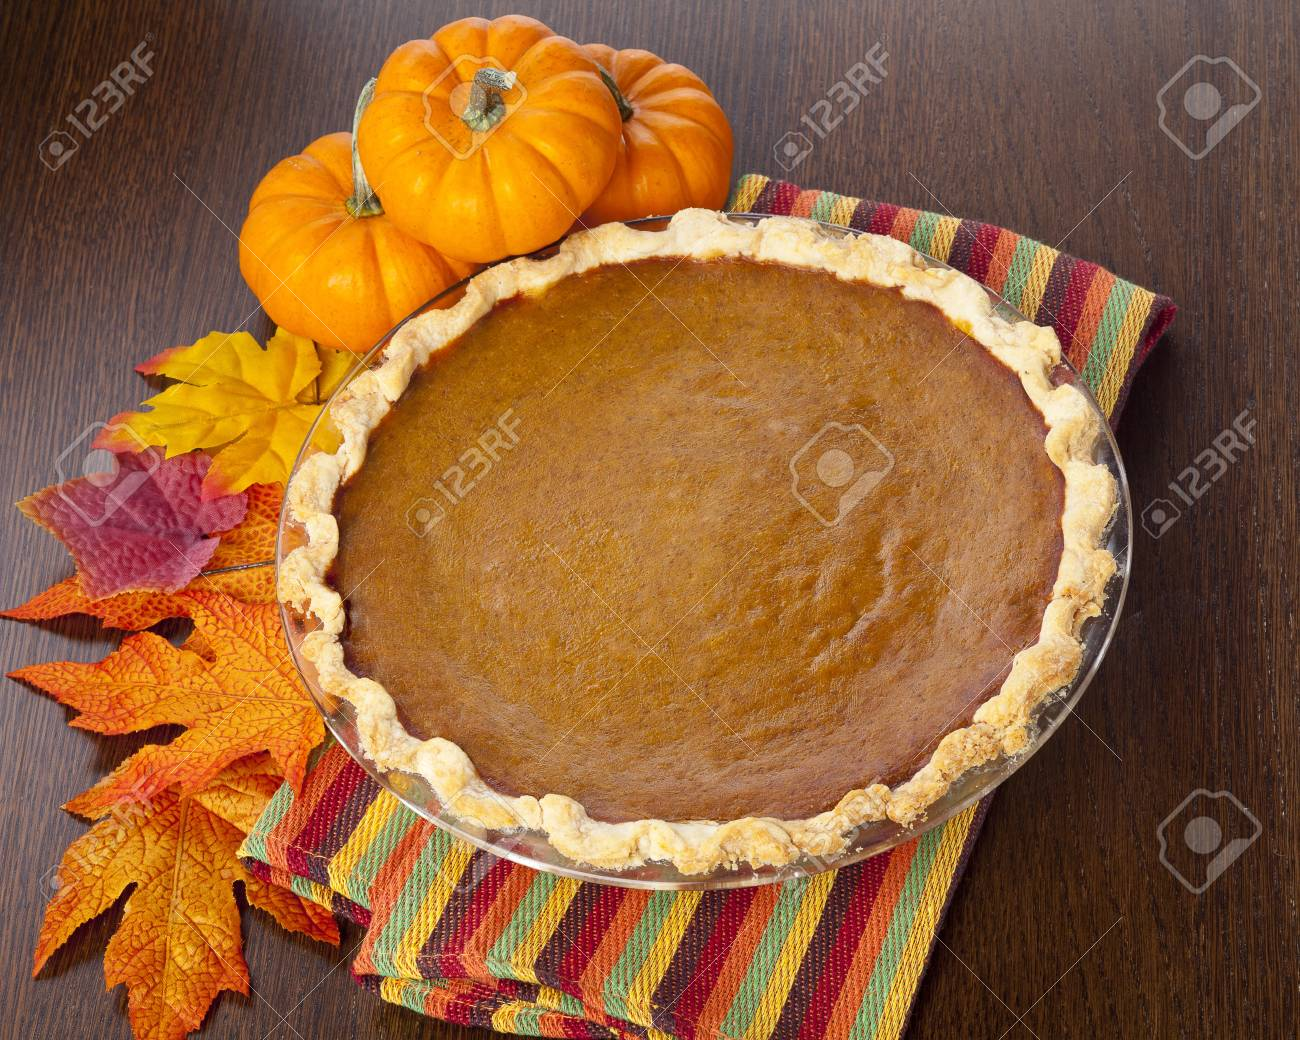 Pie on a wooden table, sitting next to pumpkins and leaves. Stock Photo - 17210488